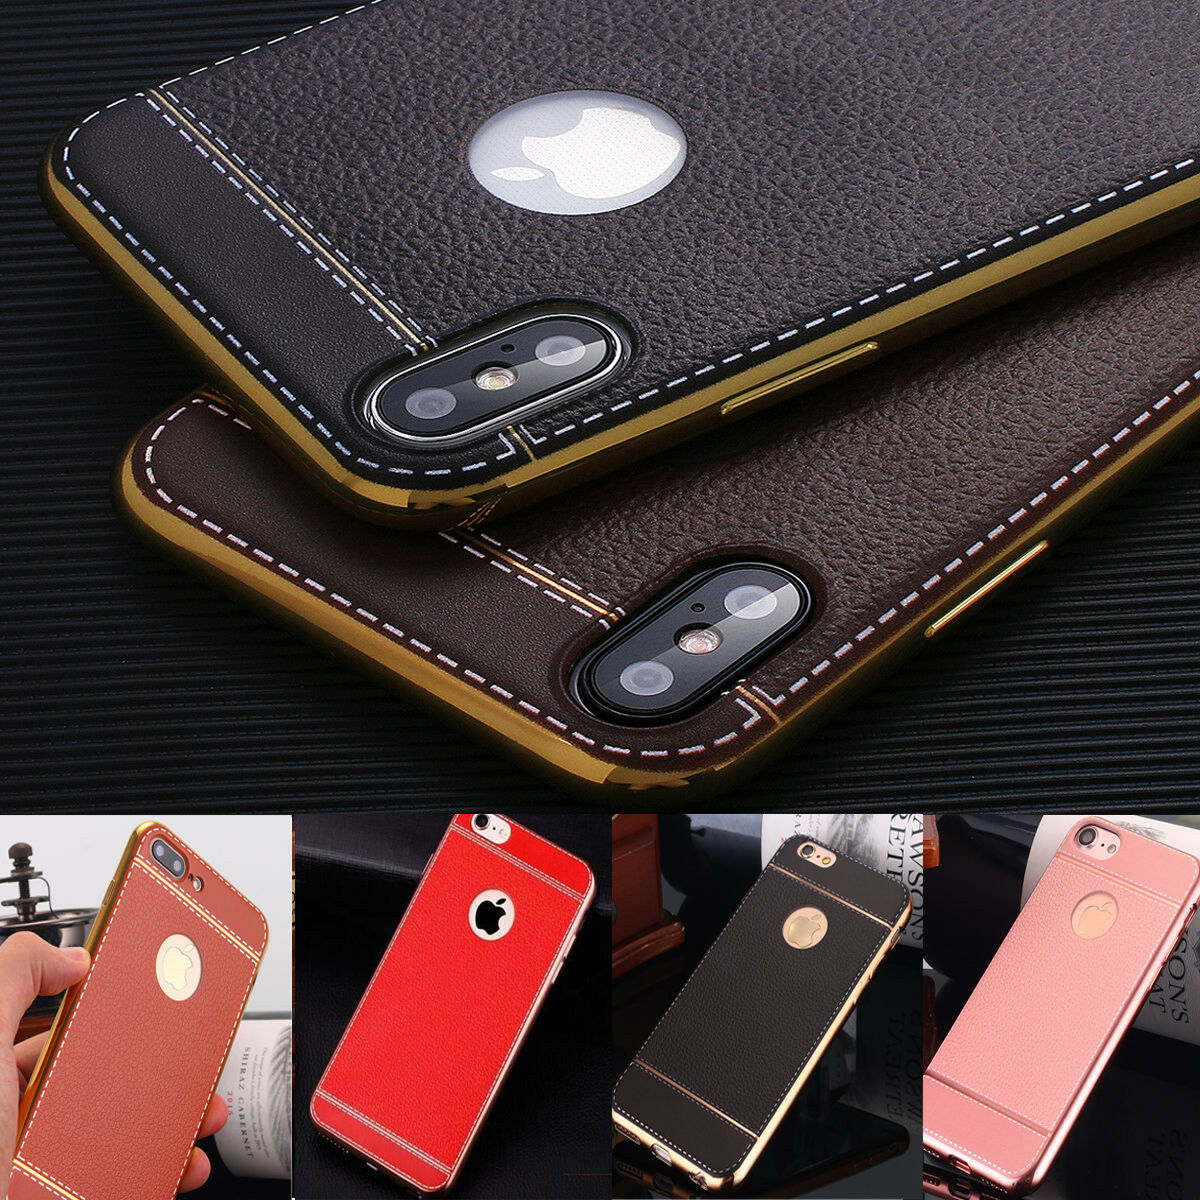 $4.59 - Luxury Ultra-Thin Slim PU Leather Soft Phone Case Cover for iPhone X 6s 7 8 Plus